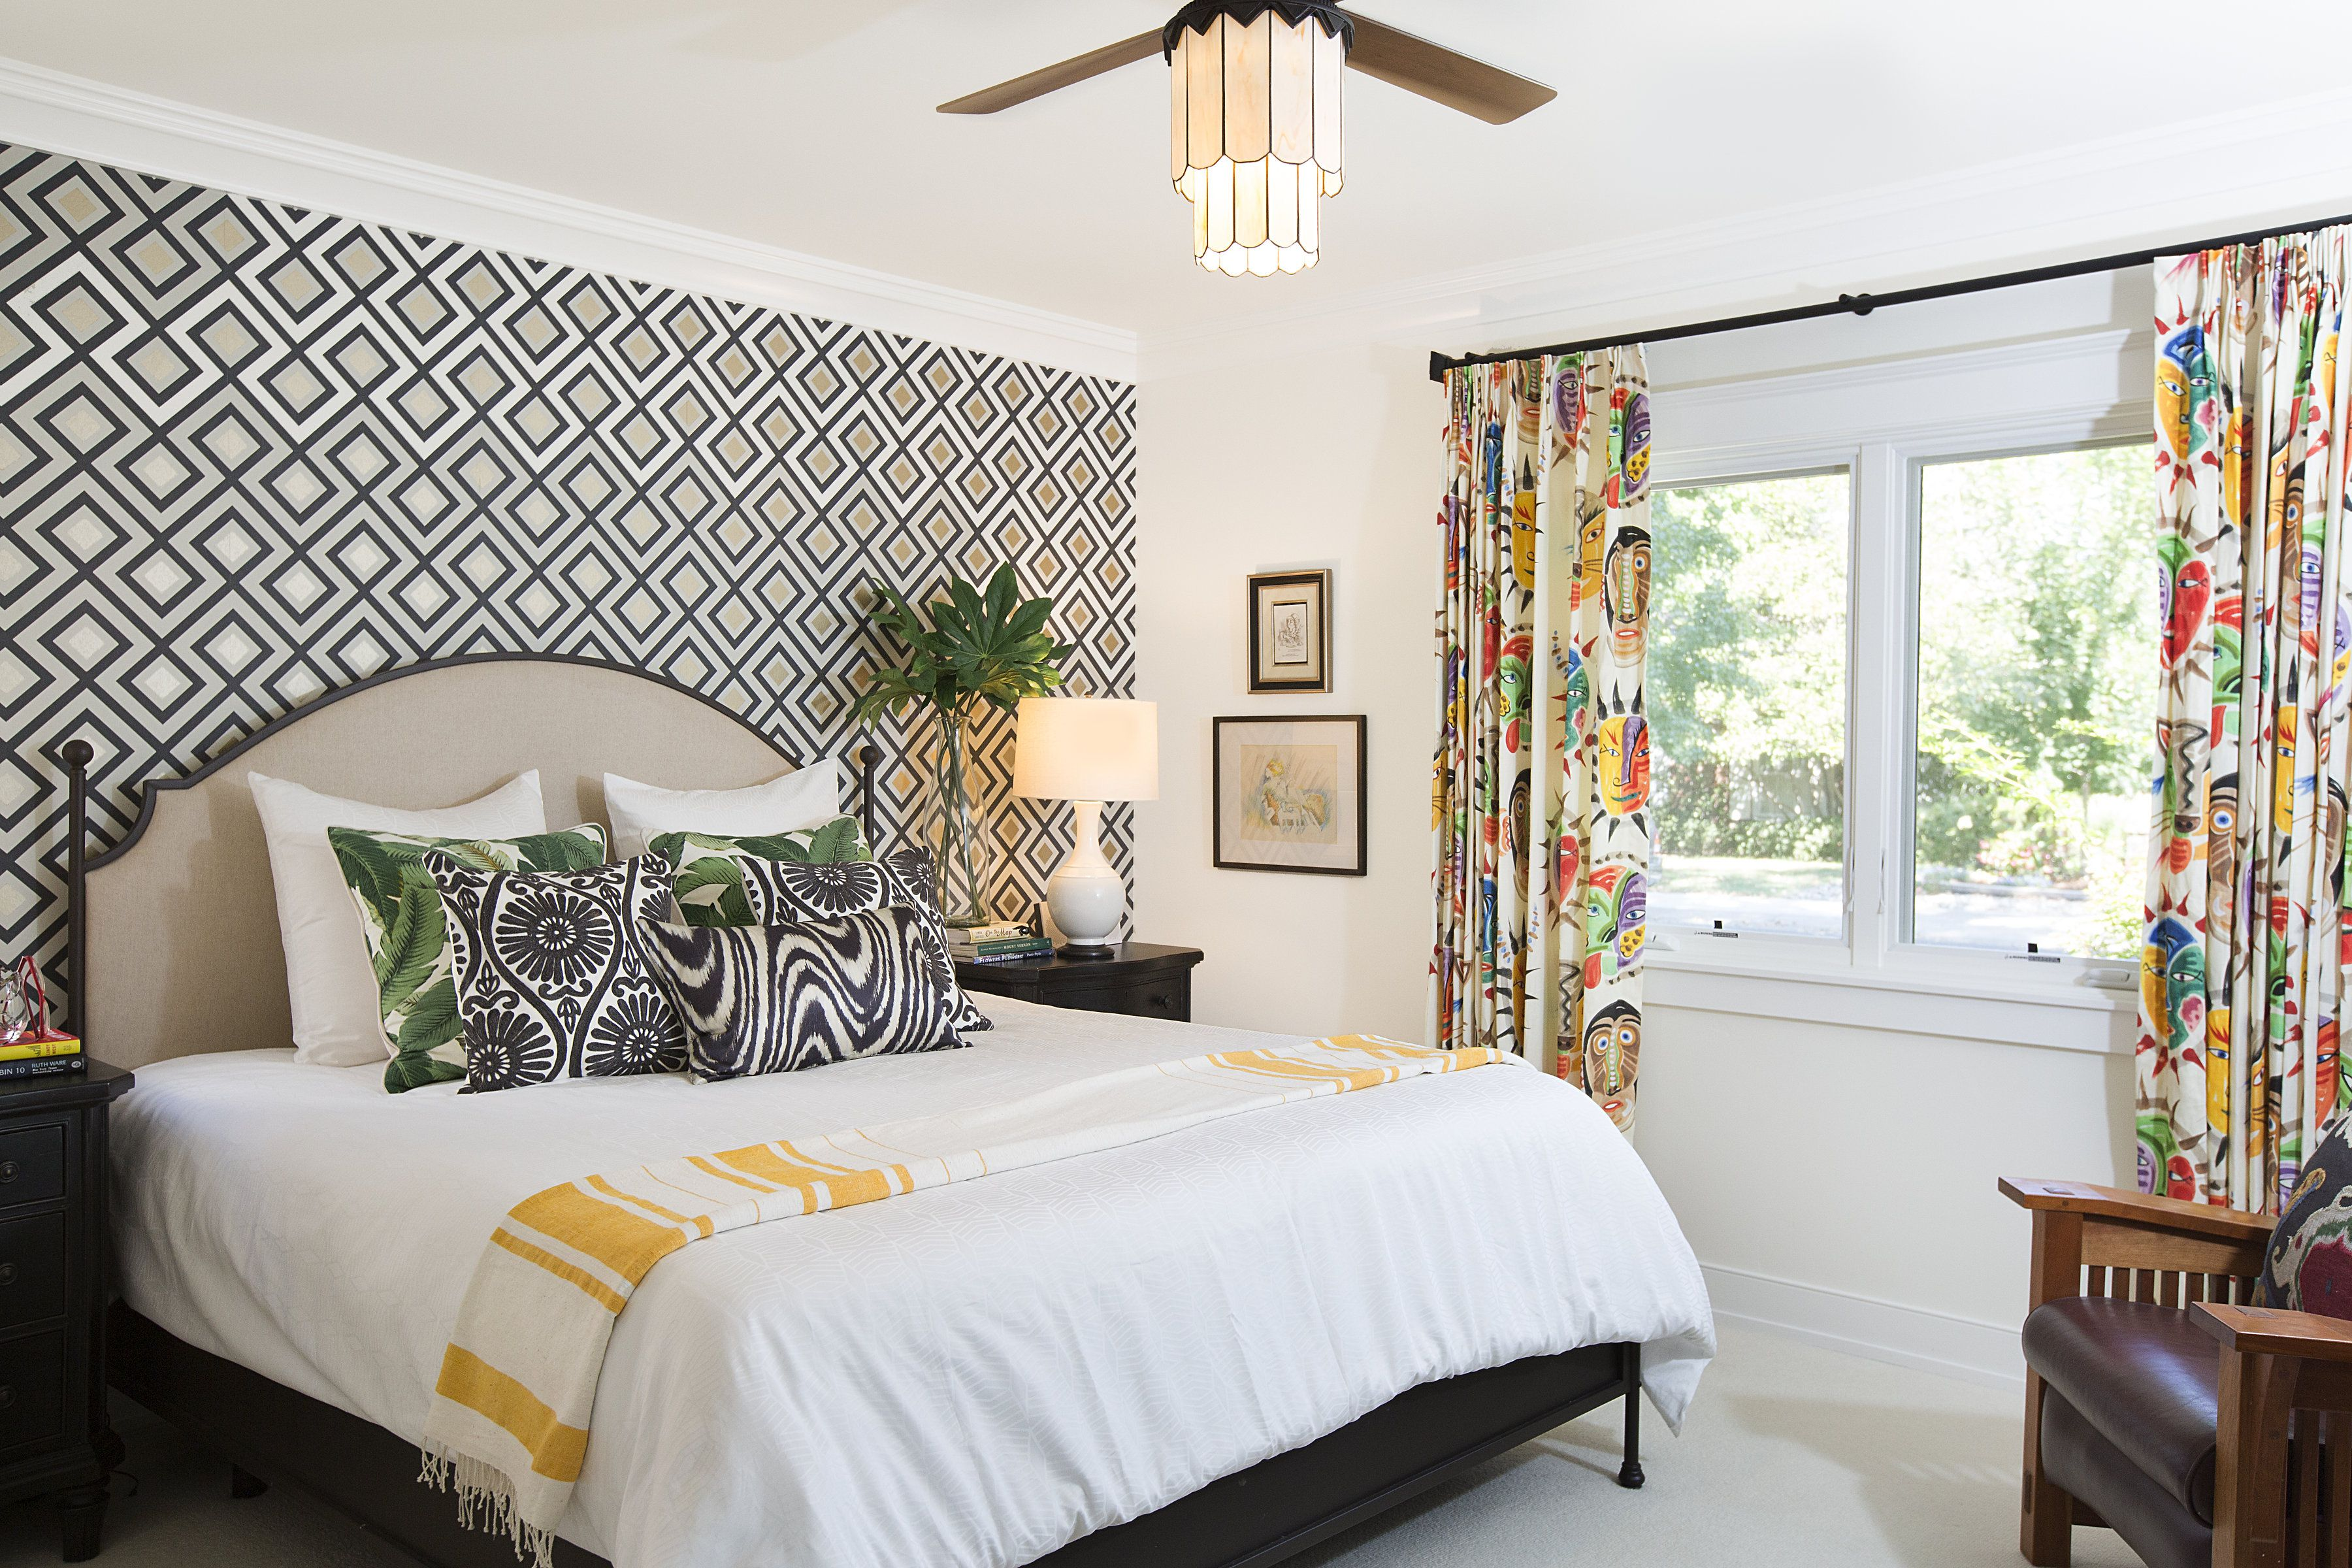 22 Stylish Accent Wall Ideas   How to Use Paint Wallpaper Wood 3600x2400